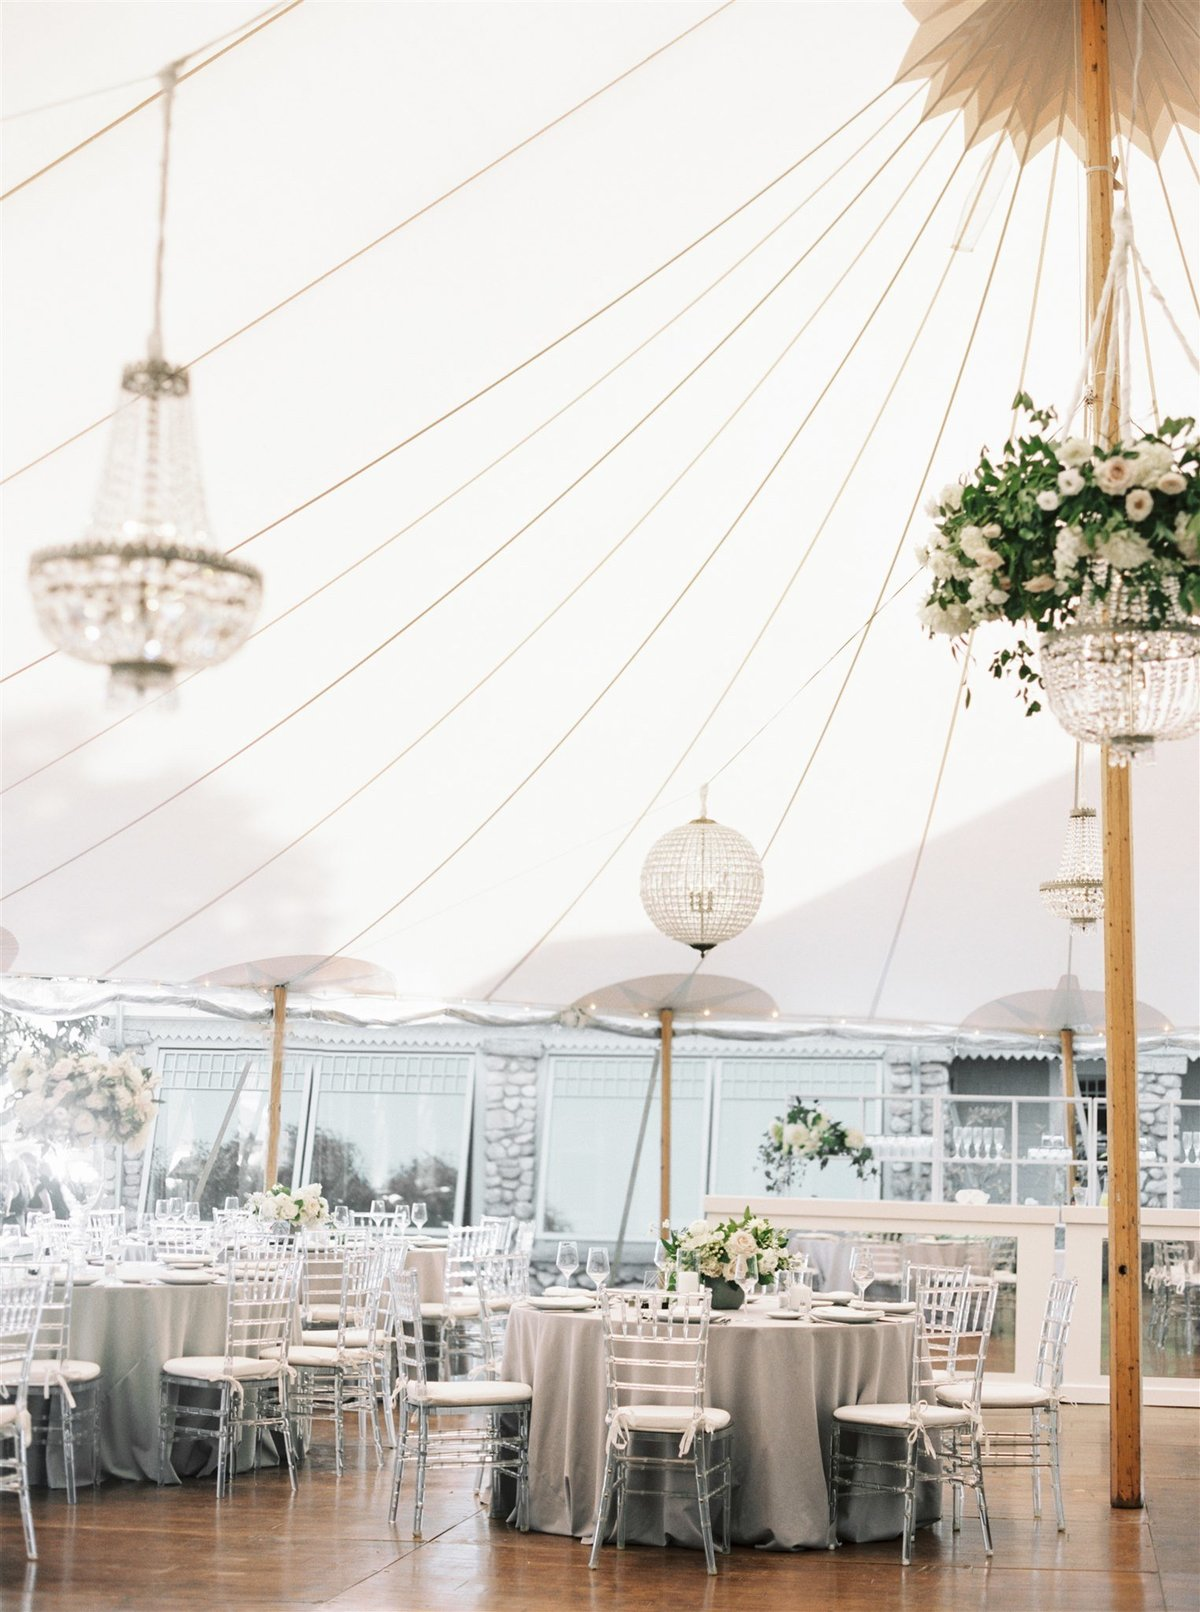 Cape Cod Tented Wedding for Tory and Ugo21